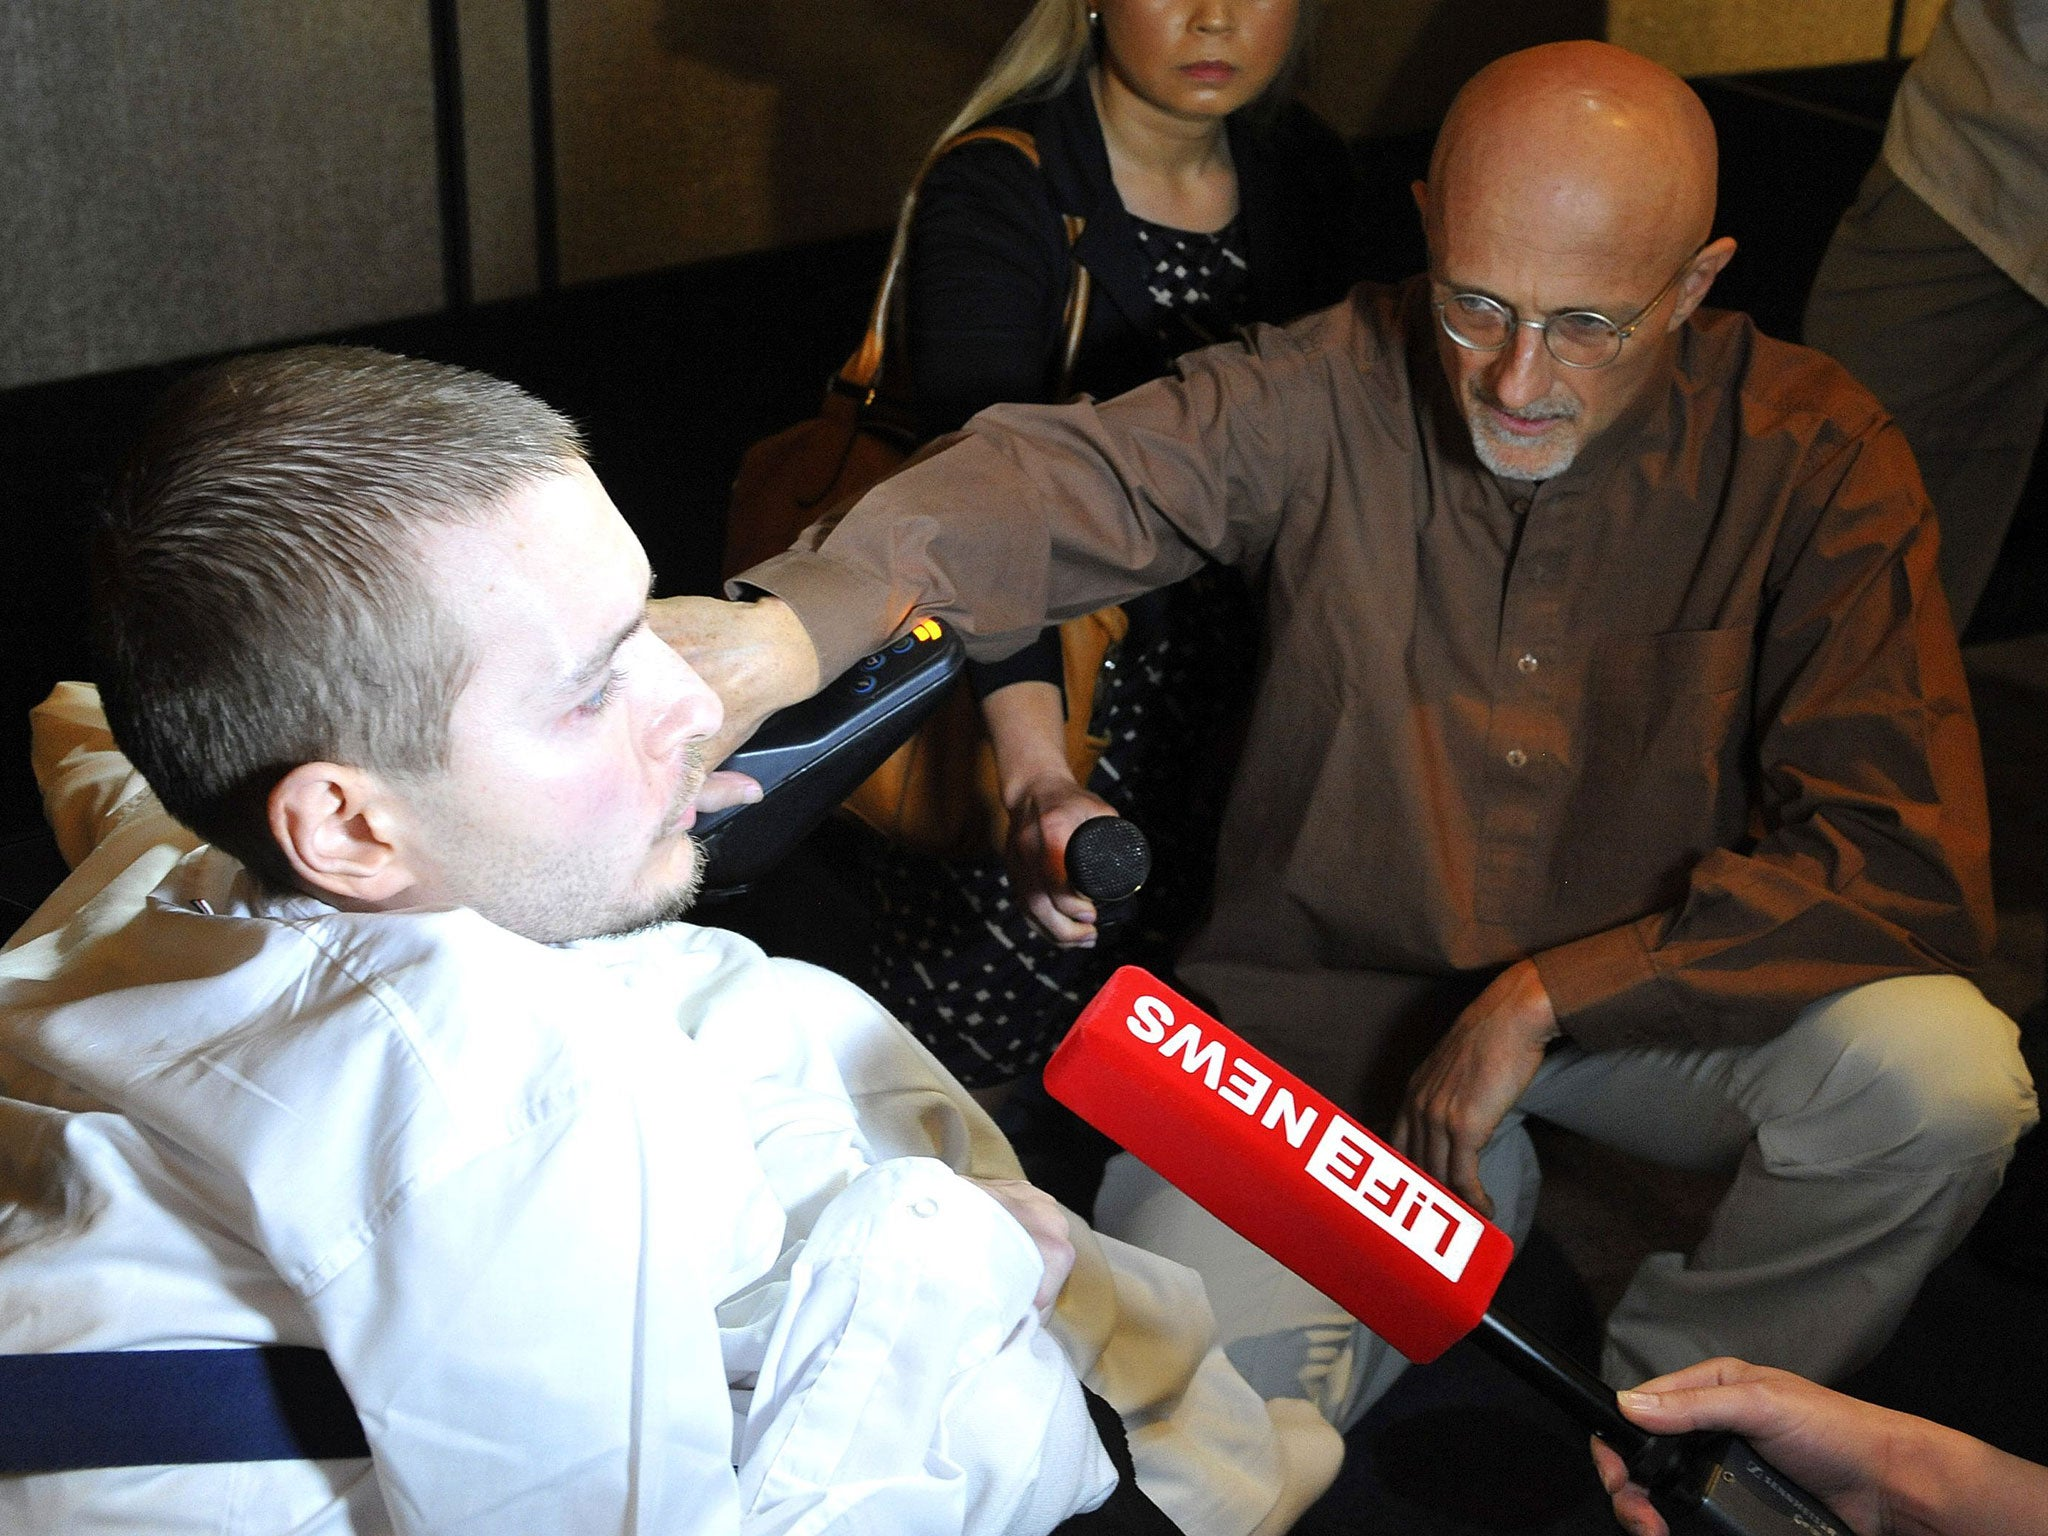 Sergio Canavero Head Transplant >> Human head transplant scientist says promising animal studies mean first procedure could take ...